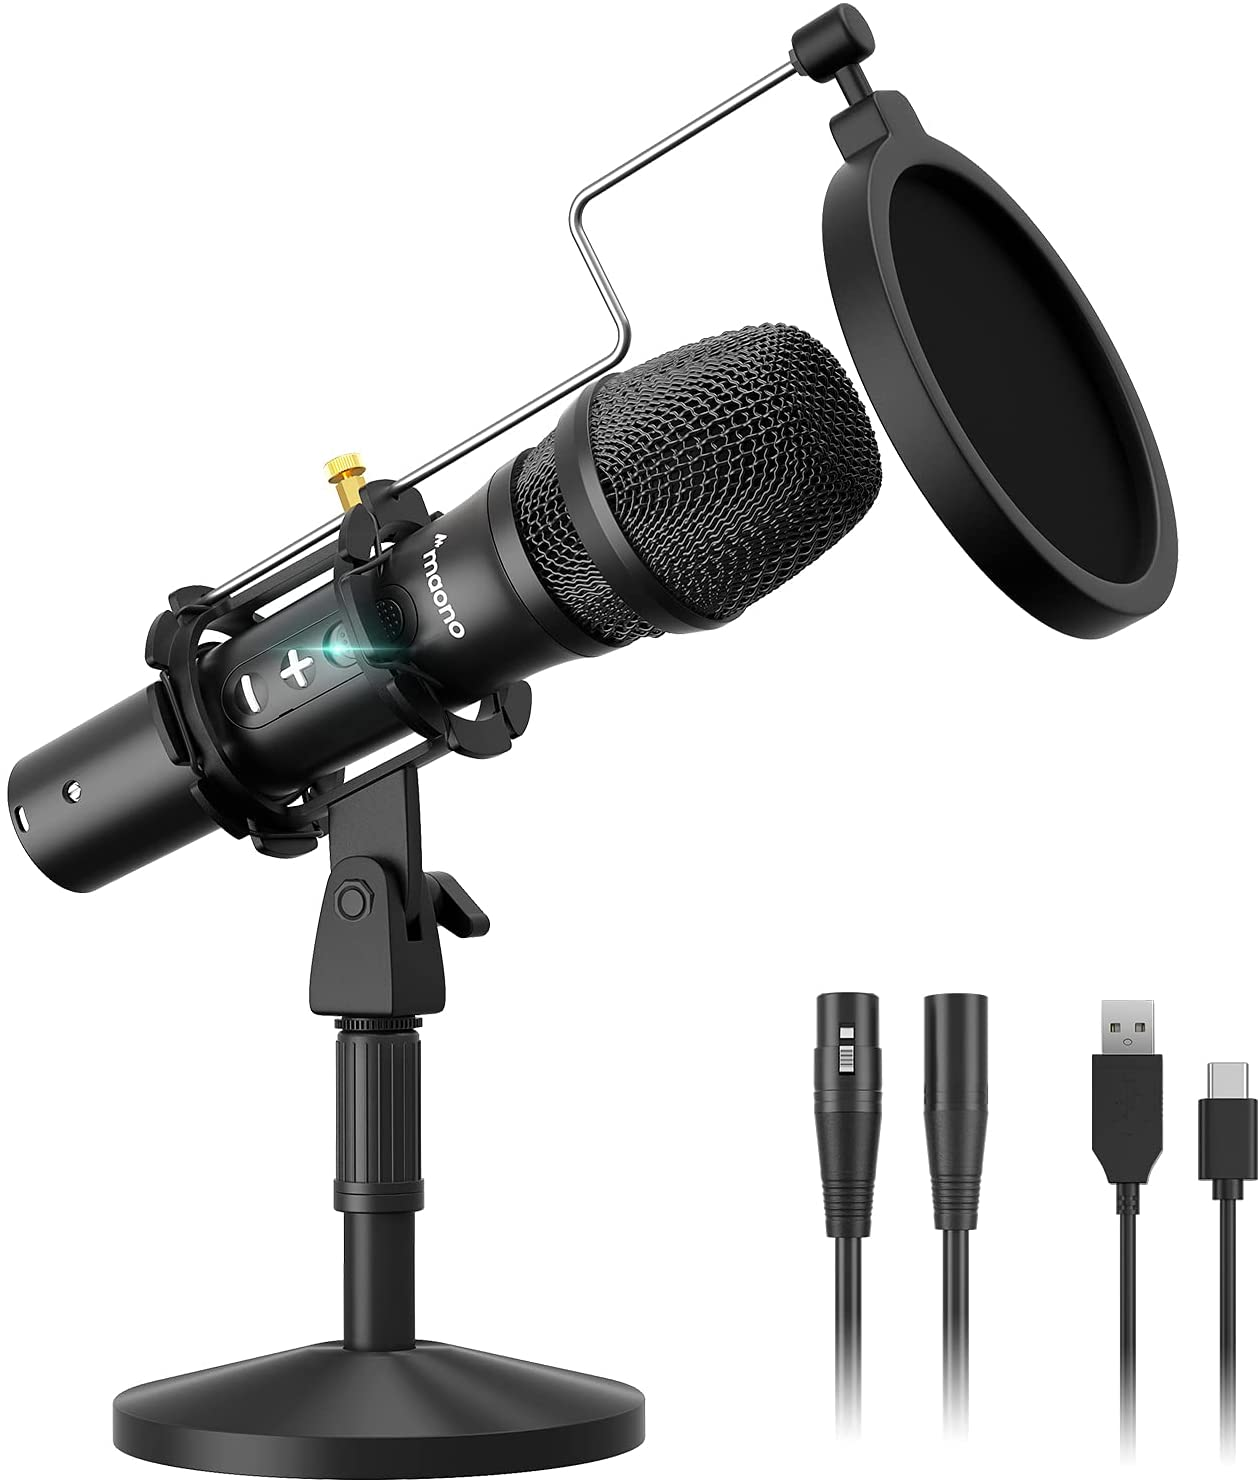 USB/XLR Cardioid Dynamic Microphone, MAONO Metal Professional Zero-latency Monitoring Mic with Volume Control for PC, Audio interface, Idea for Home Studio, Vocal, Podcast, Singing, Streaming (HD300T)